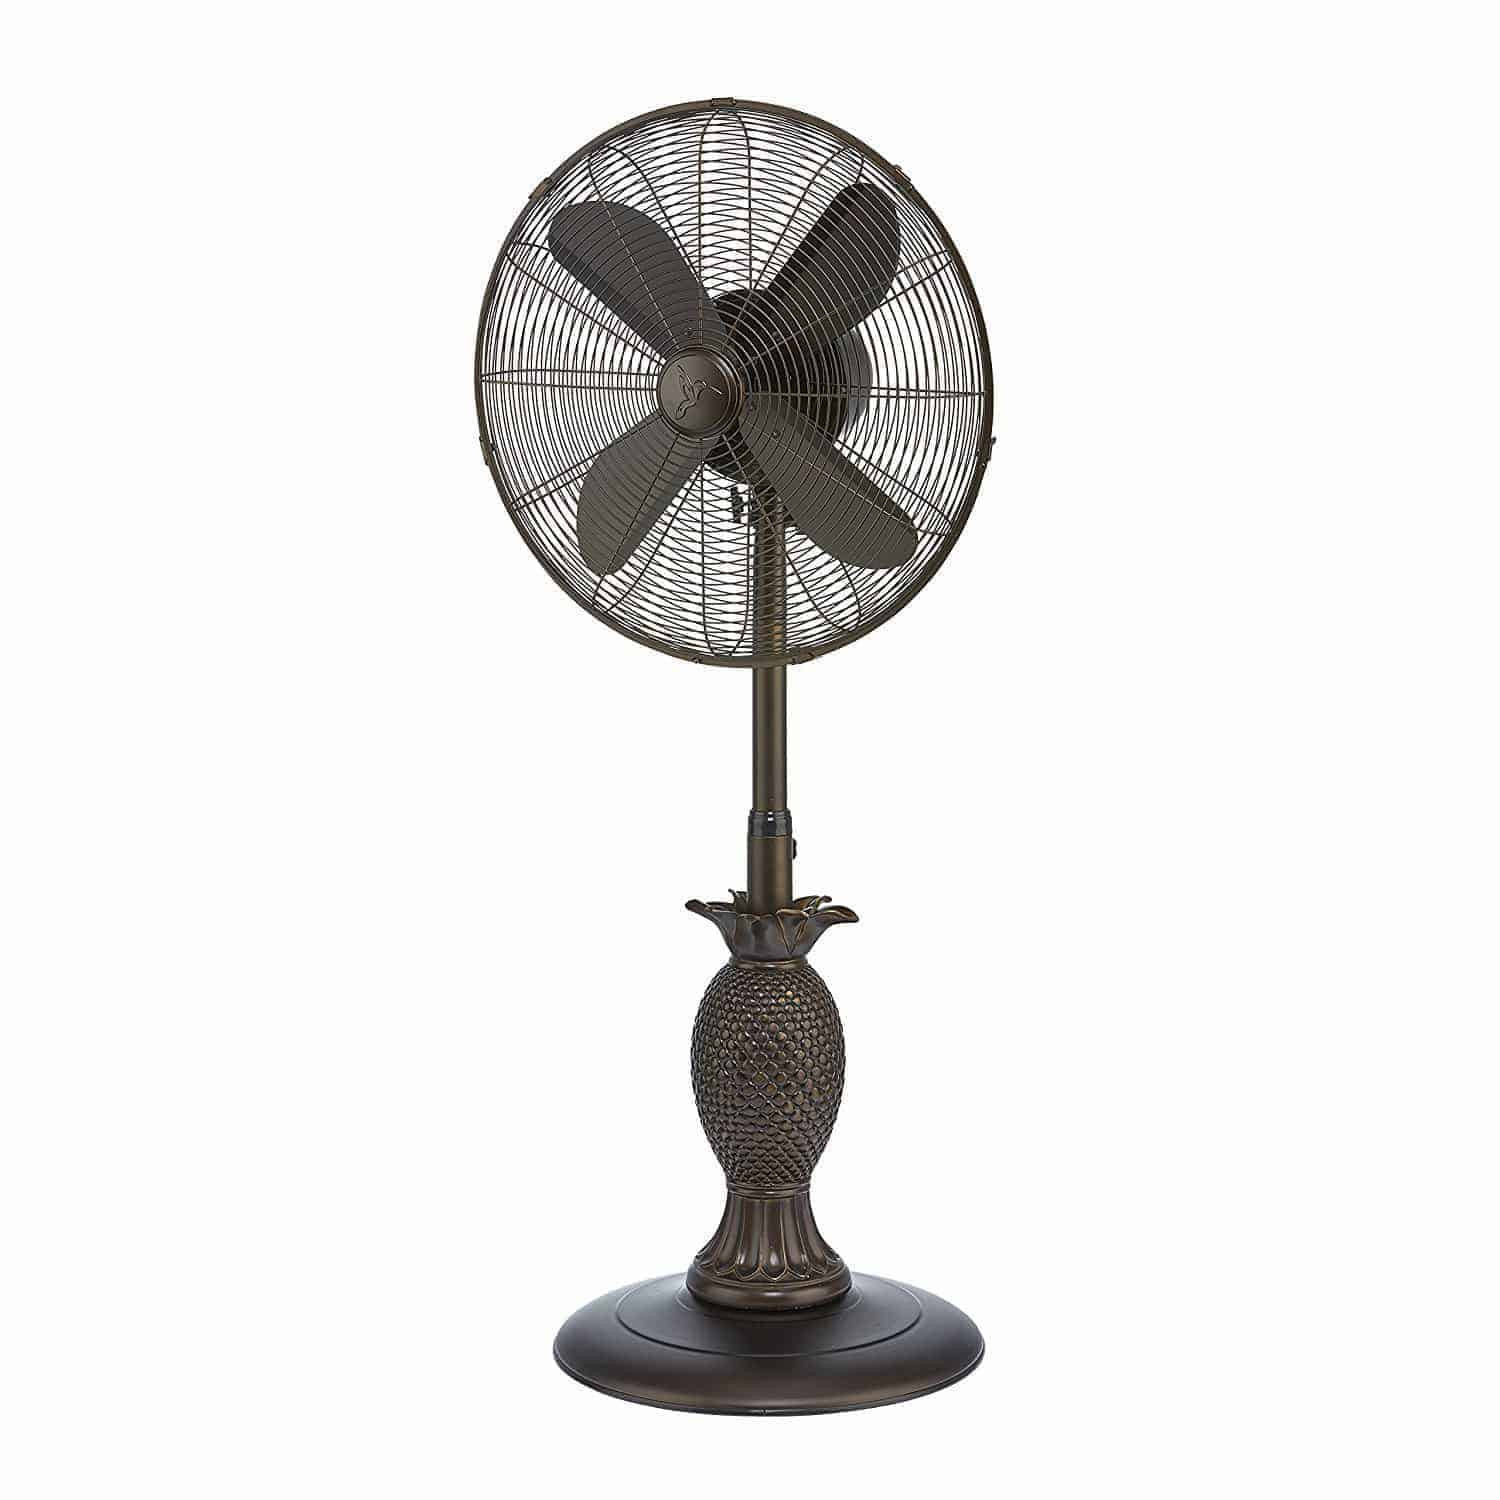 Best ideas about Outdoor Patio Fans . Save or Pin Paradise Outdoor Patio Standing Pedestal Fan Now.